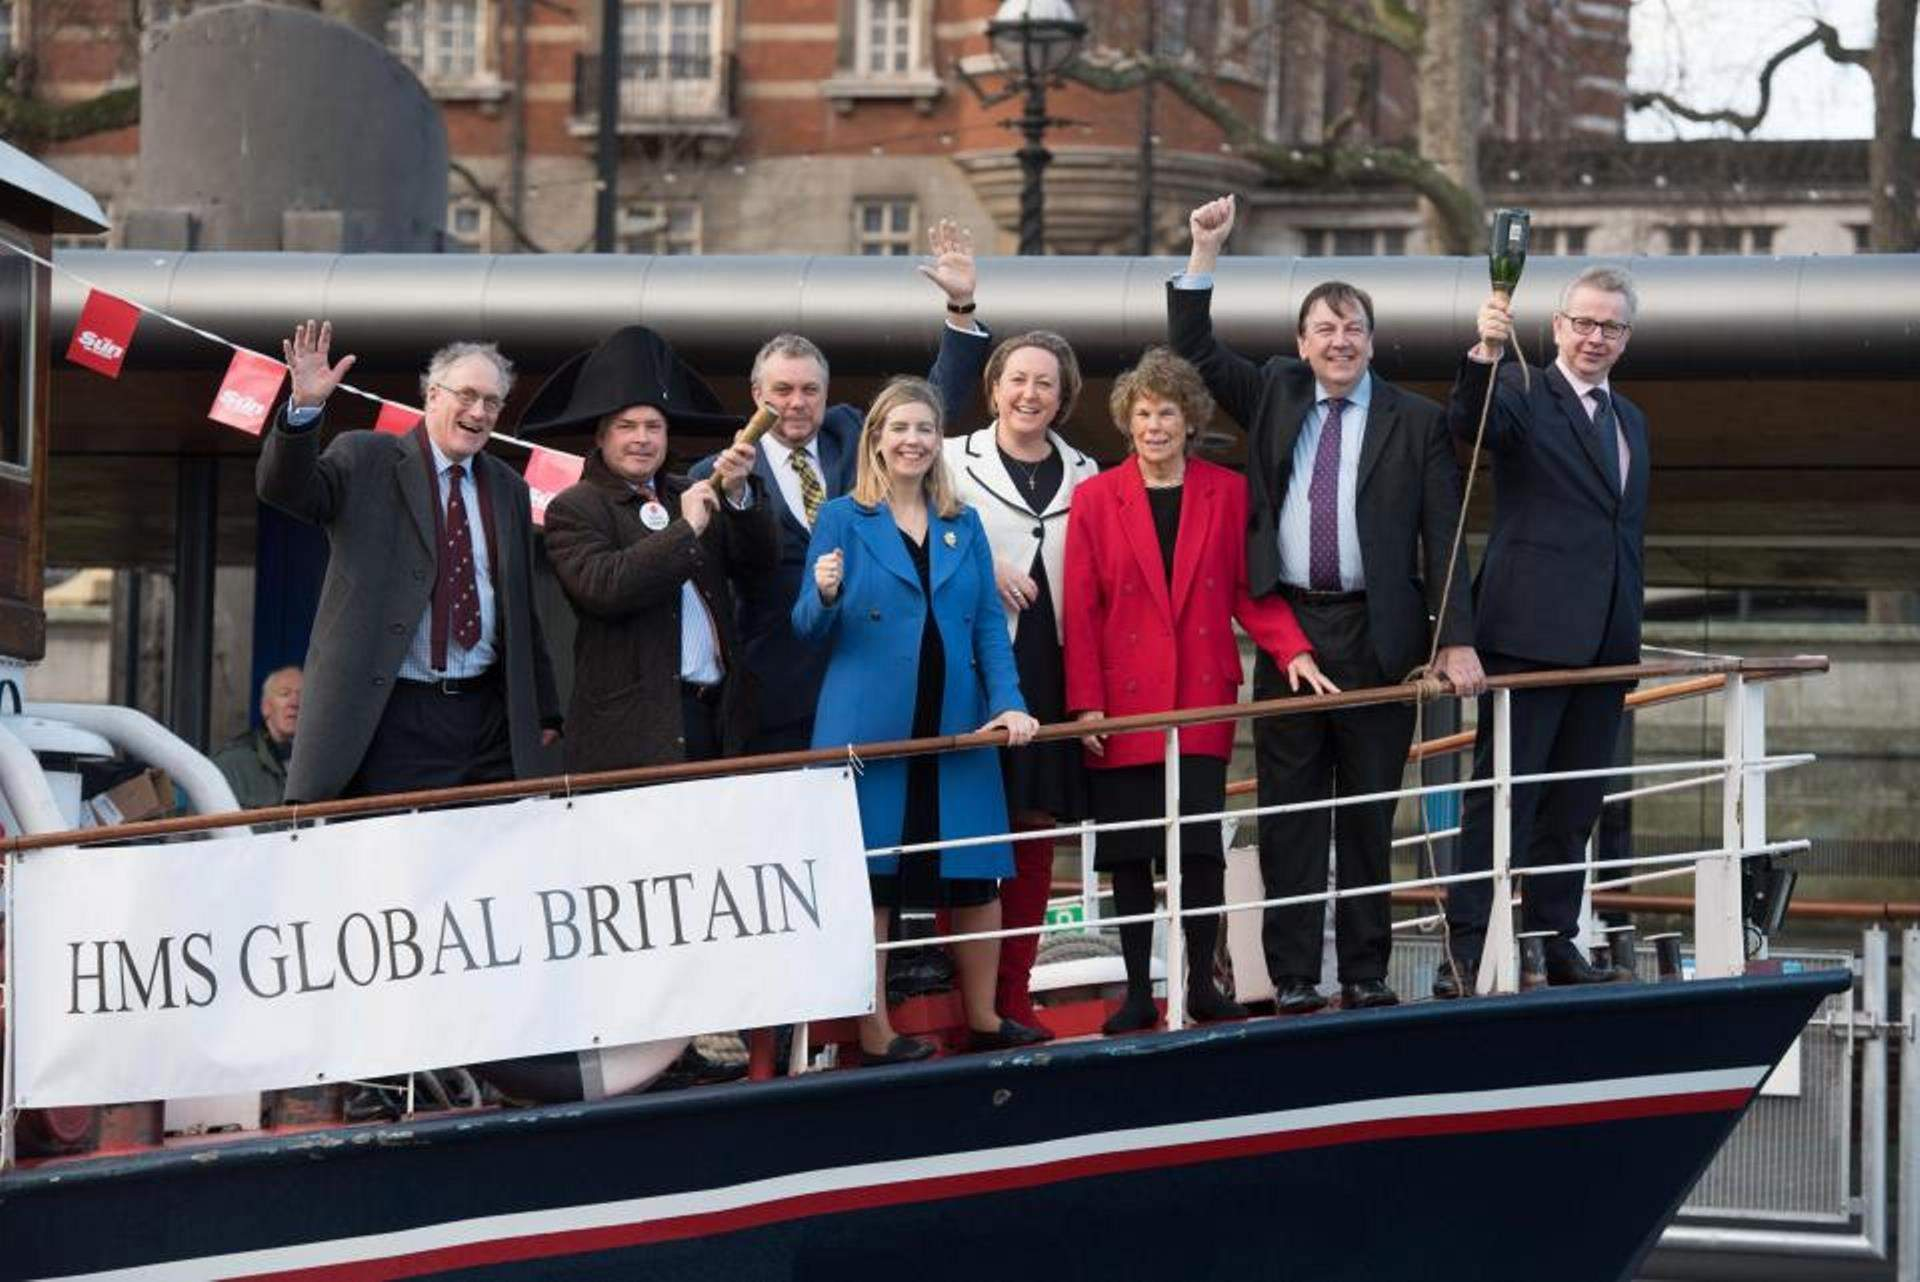 Everything that is wonderful about The Sun's HMS Global Britain Brexit boat